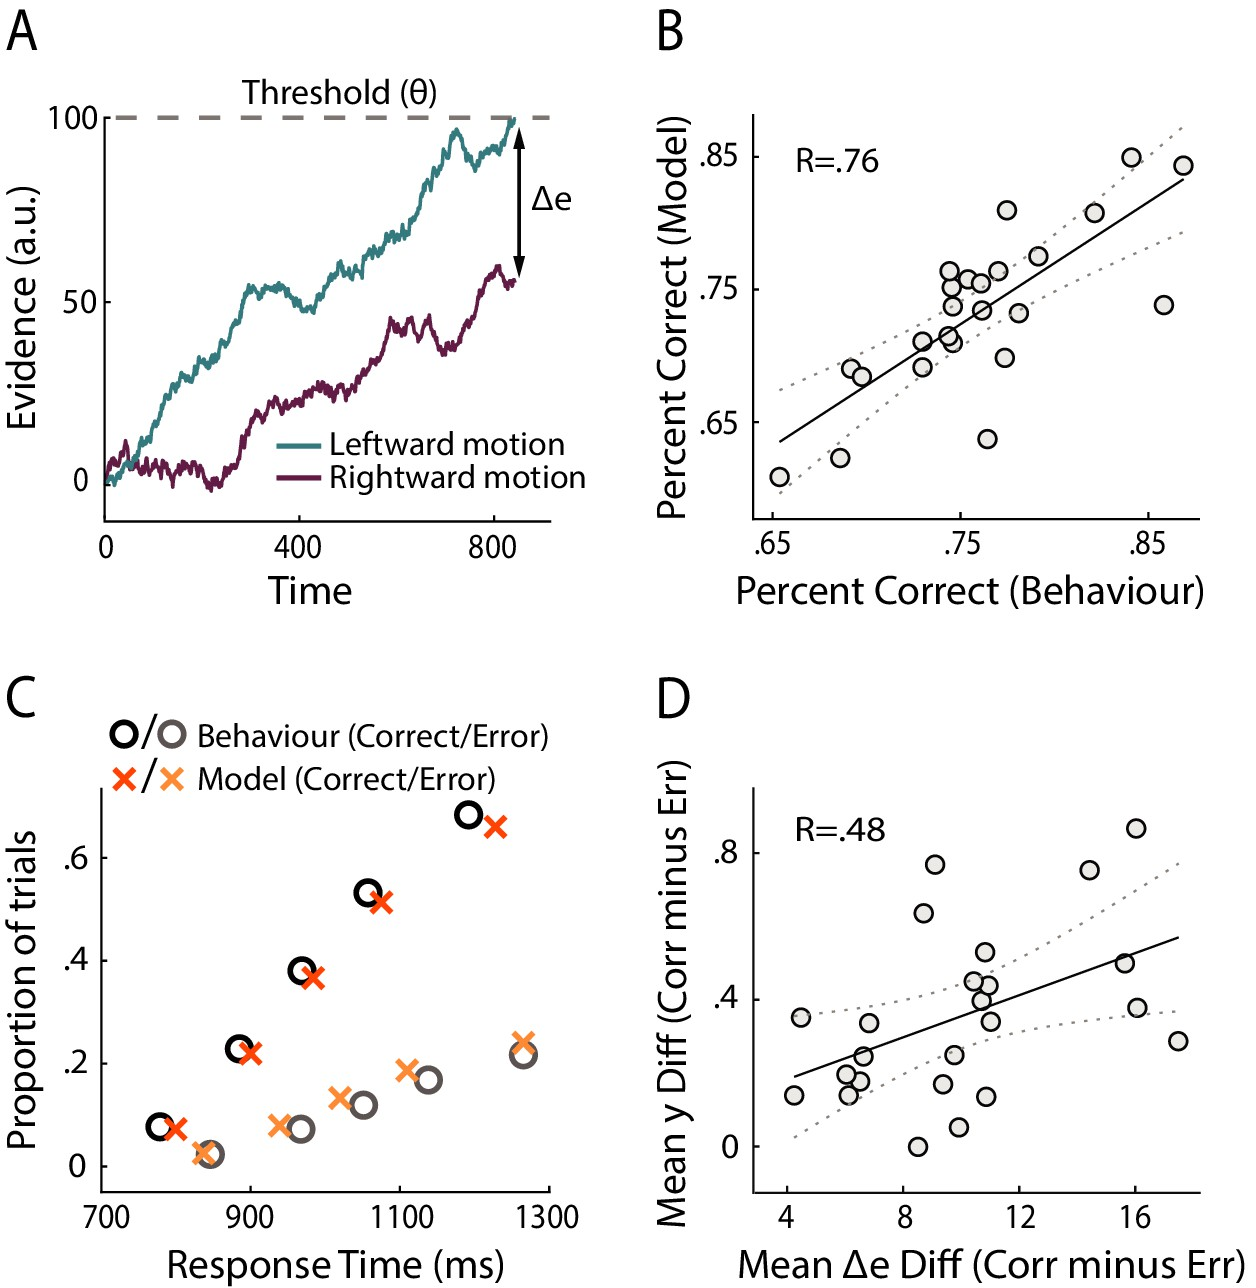 Human VMPFC encodes early signatures of confidence in